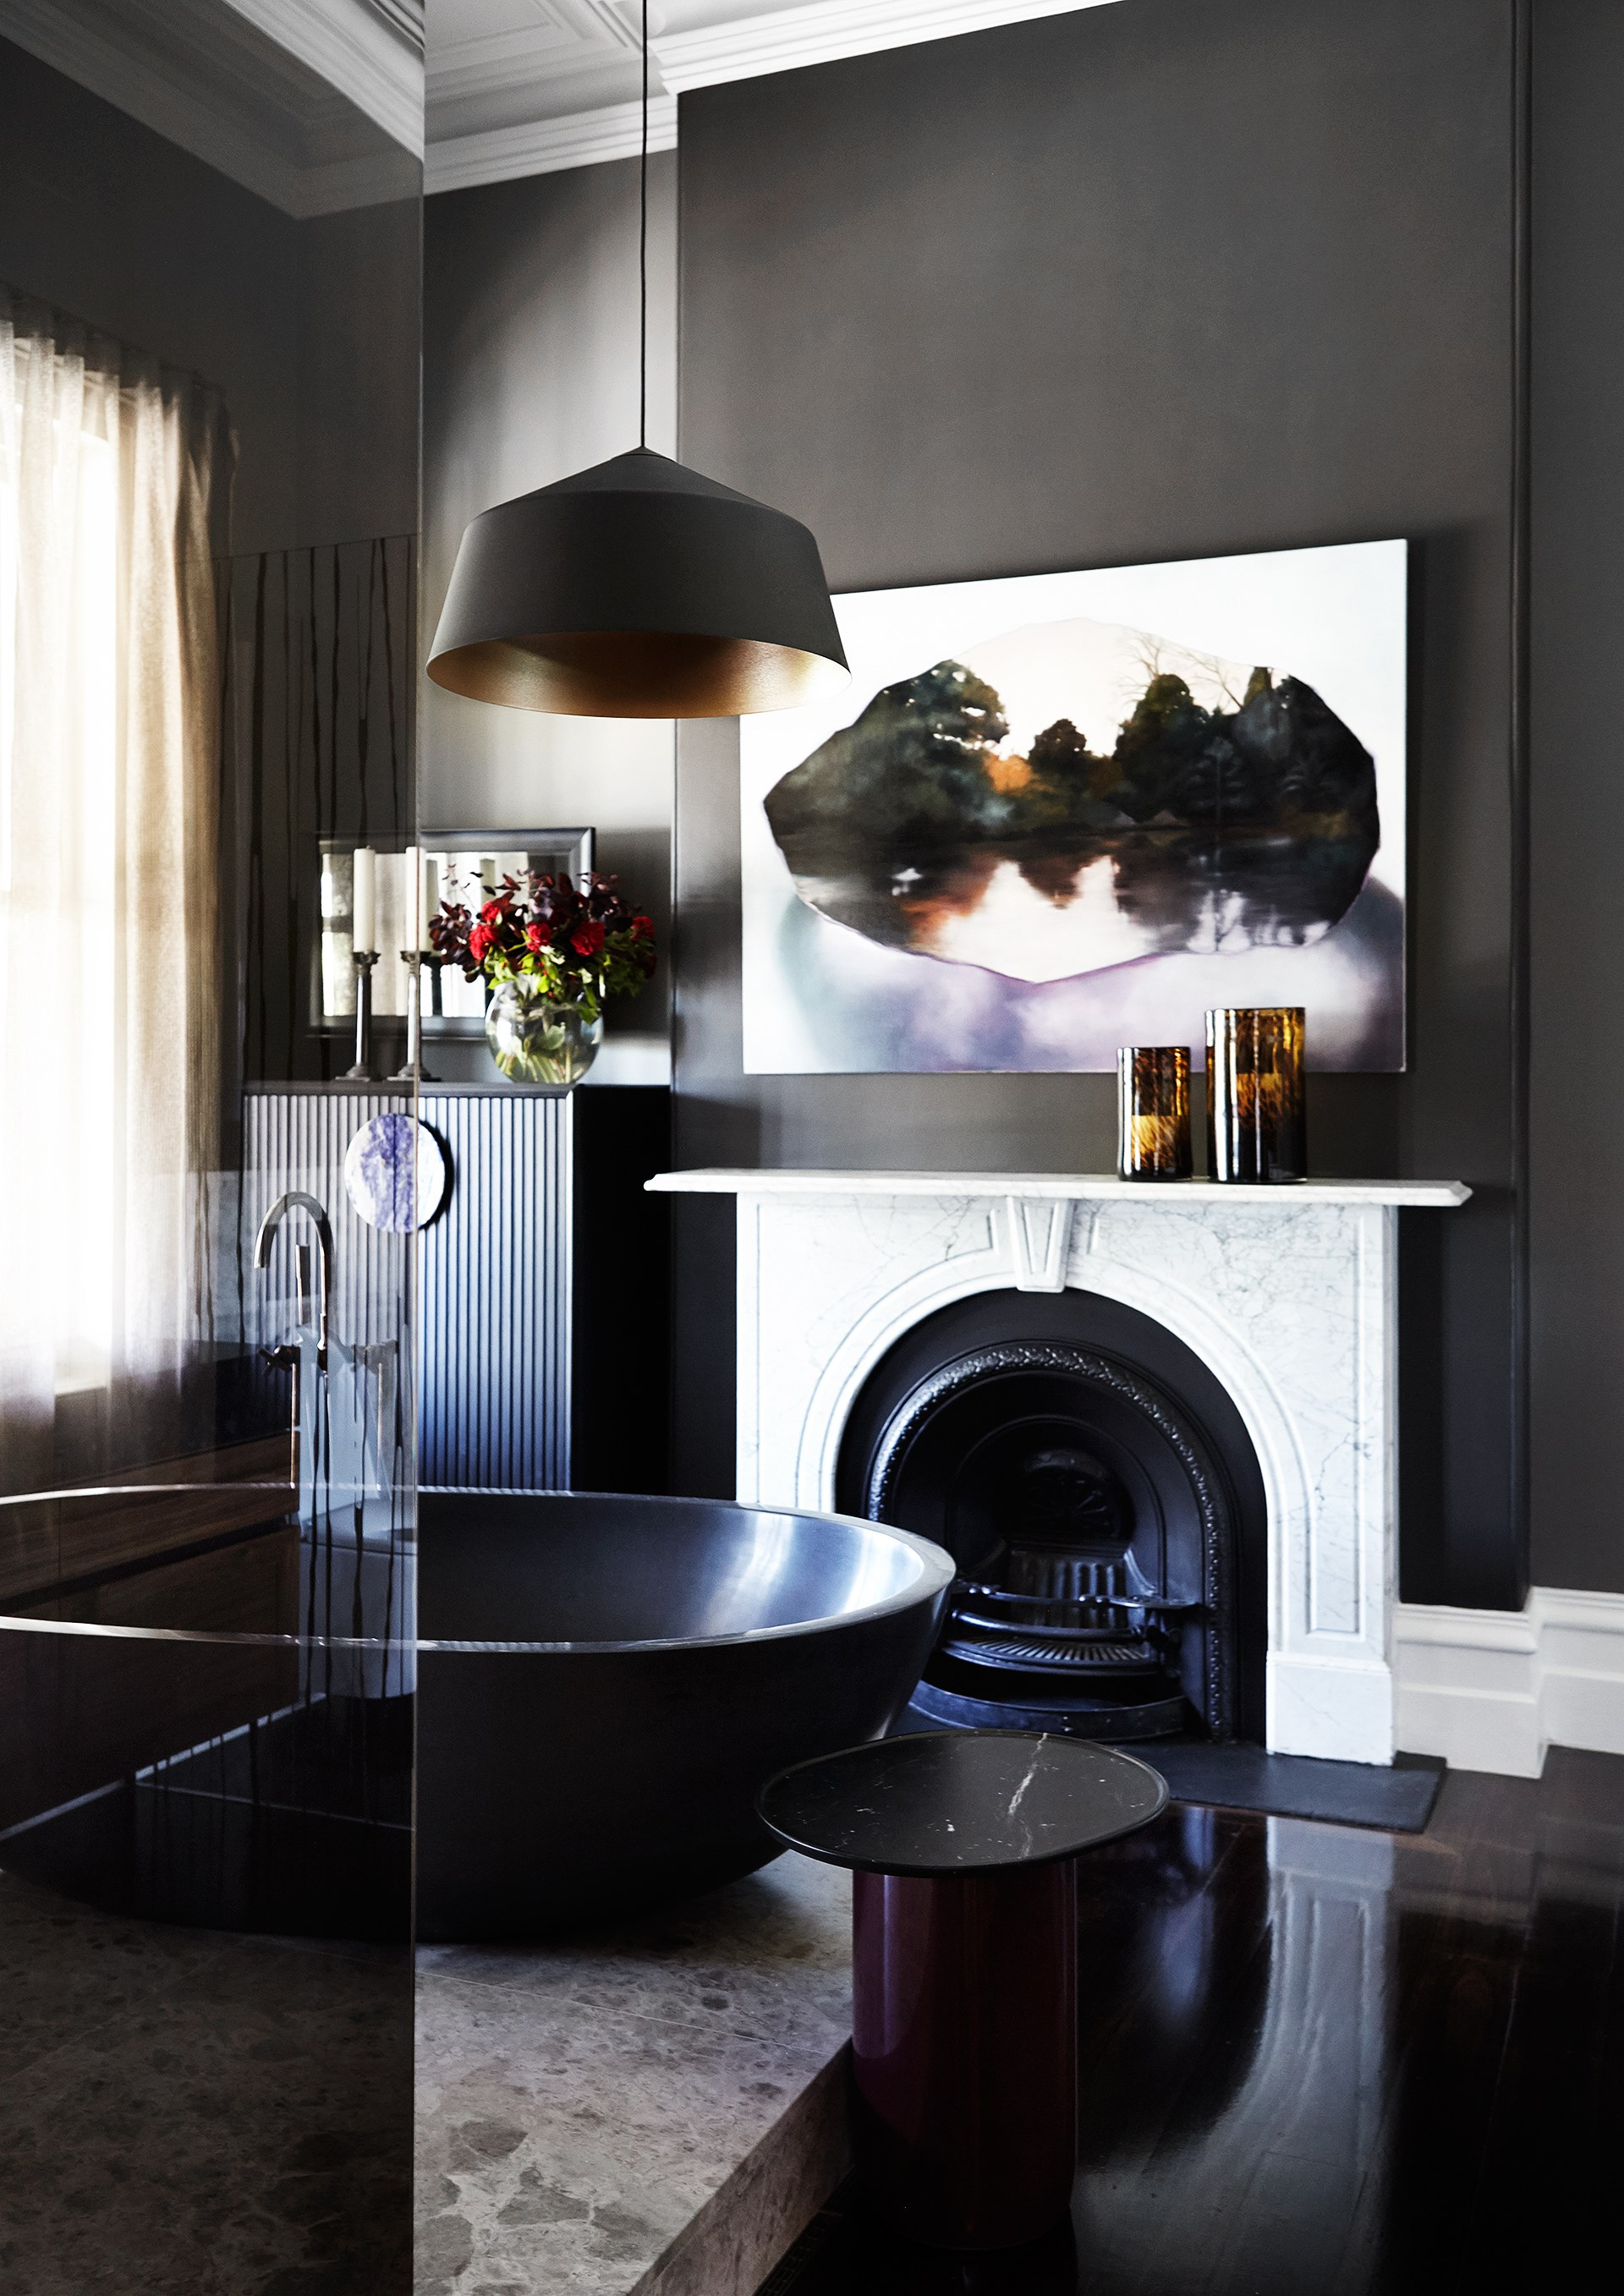 "A stone bath by [Boyd Alternatives](http://www.boydalternatives.com.au/|target=""_blank"") is the ultimate indulgence, adding an earthy feel to this dark and dramatic bathroom within a [historic Brisbane home](http://www.homestolove.com.au/bold-restoration-of-a-heritage-brisbane-landmark-4493